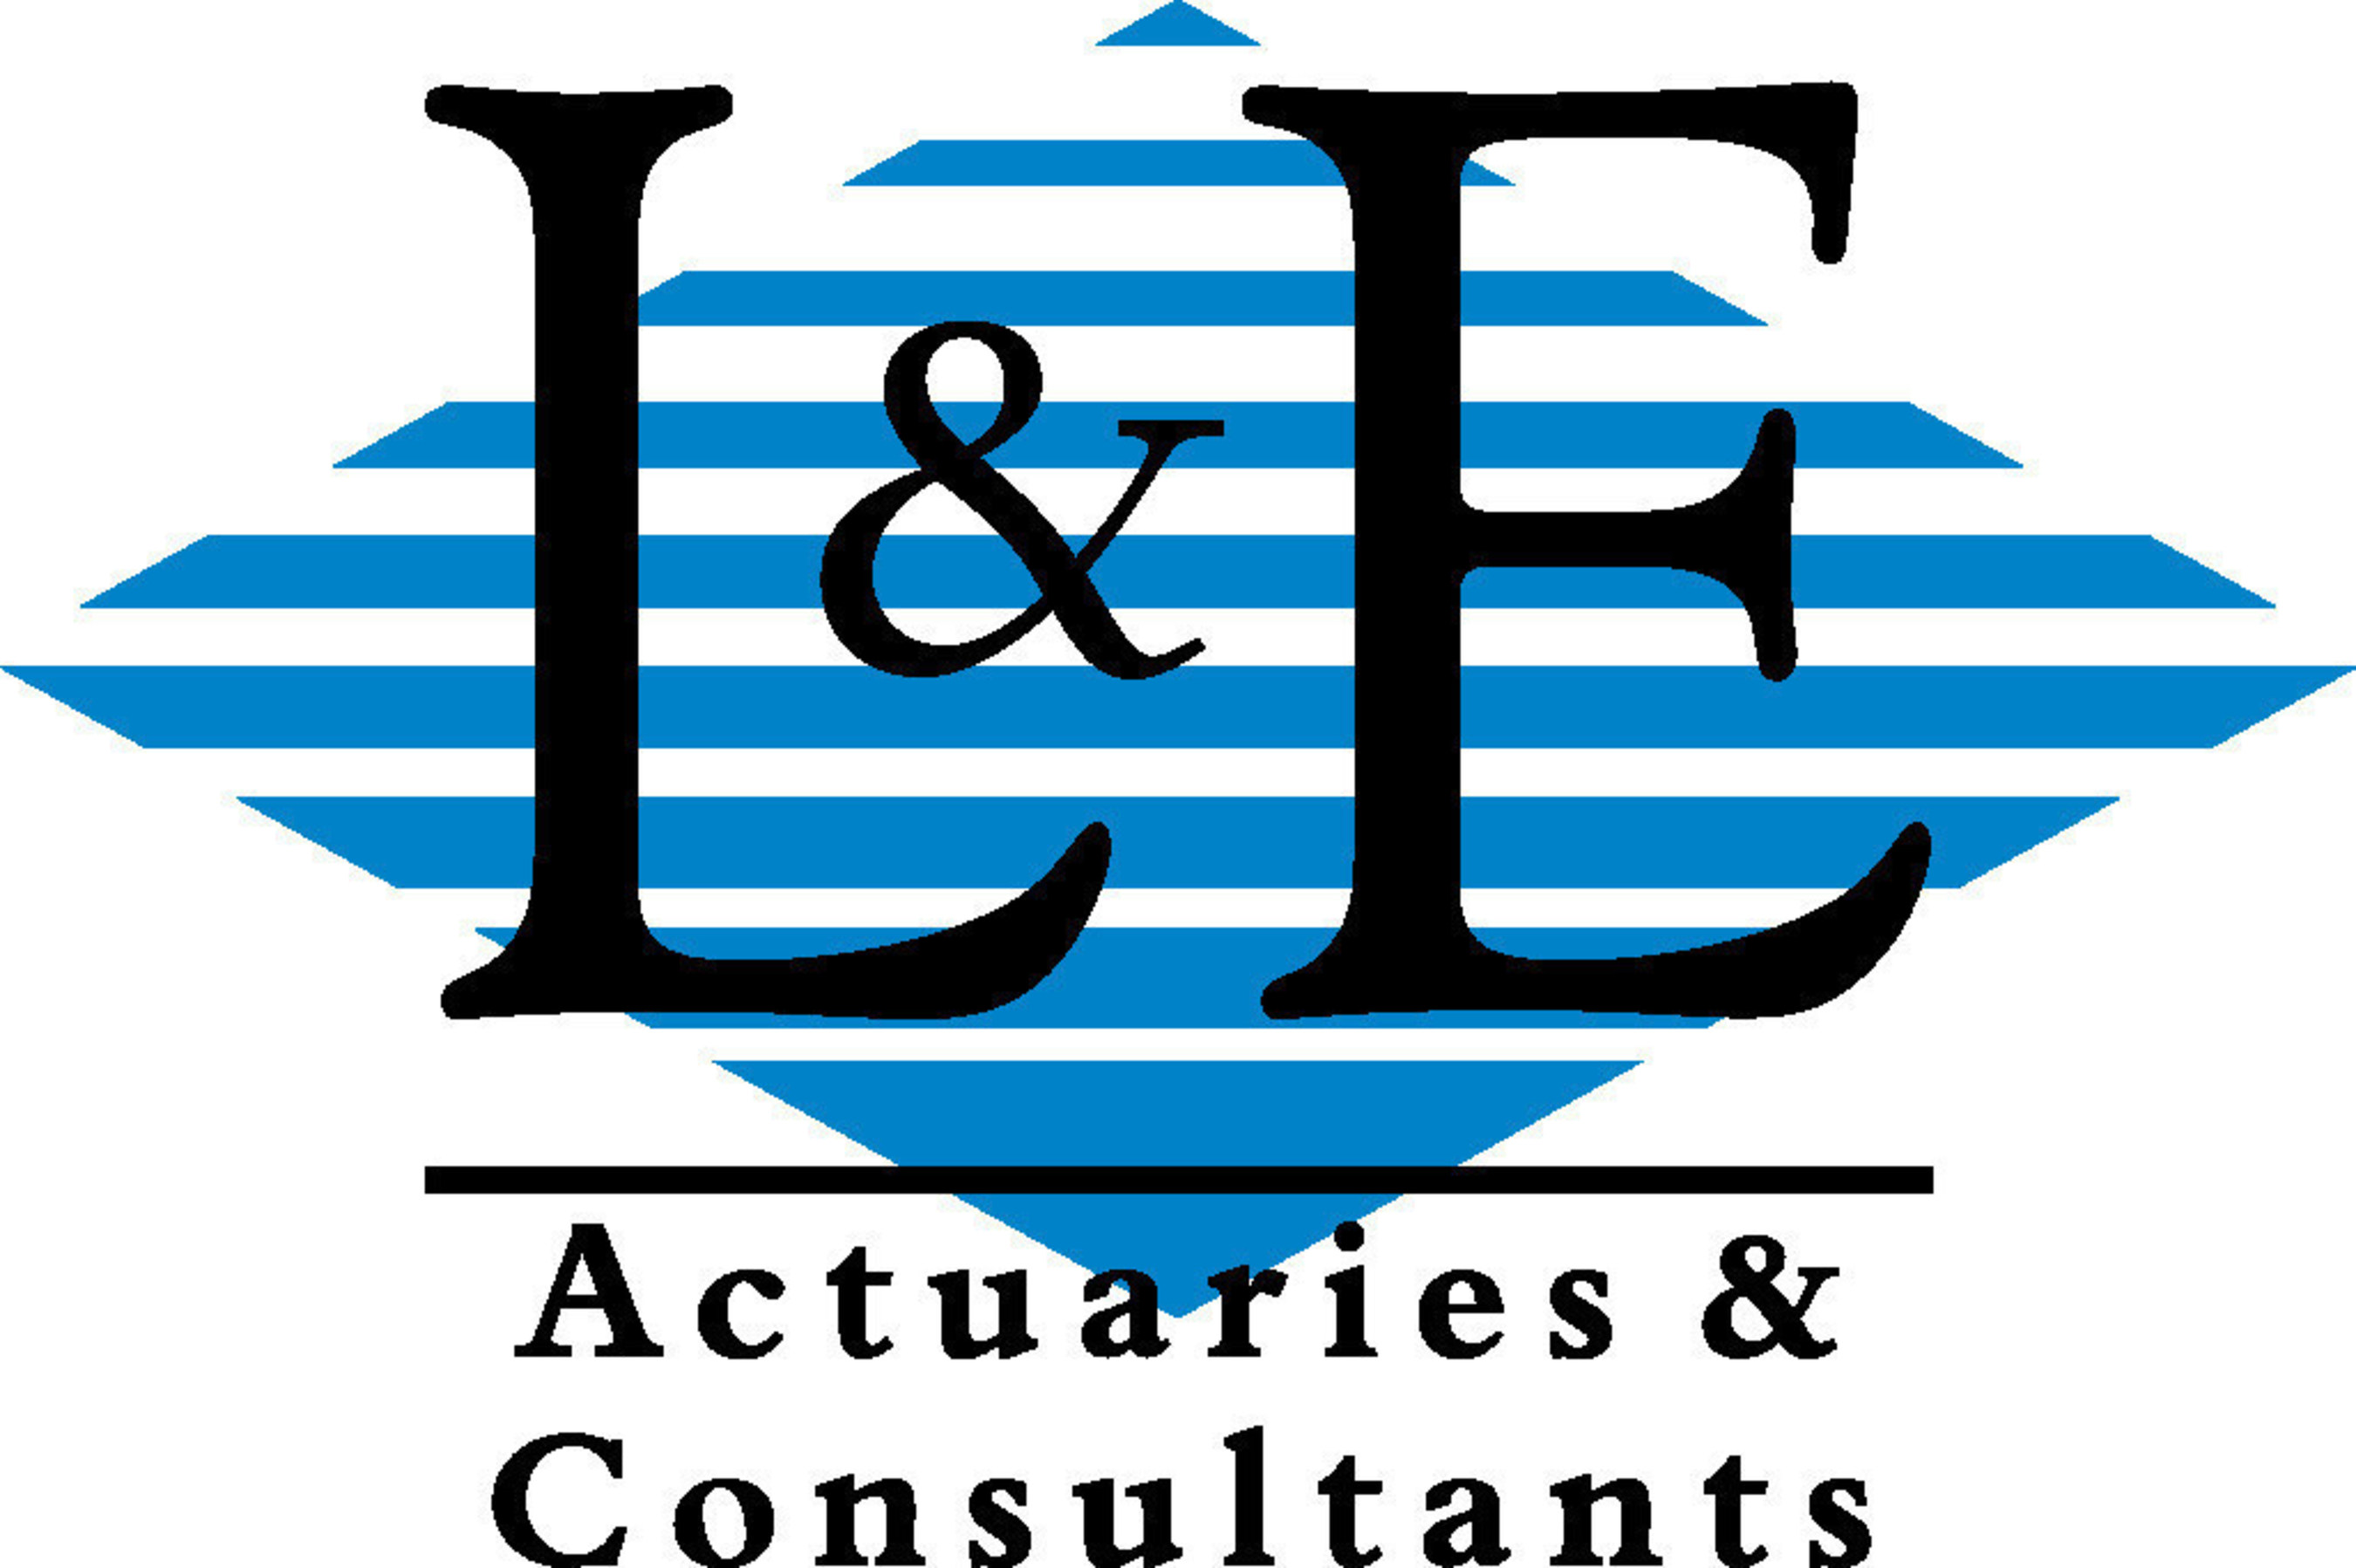 Lewis & Ellis recognized as a leading actuarial firm for 2015